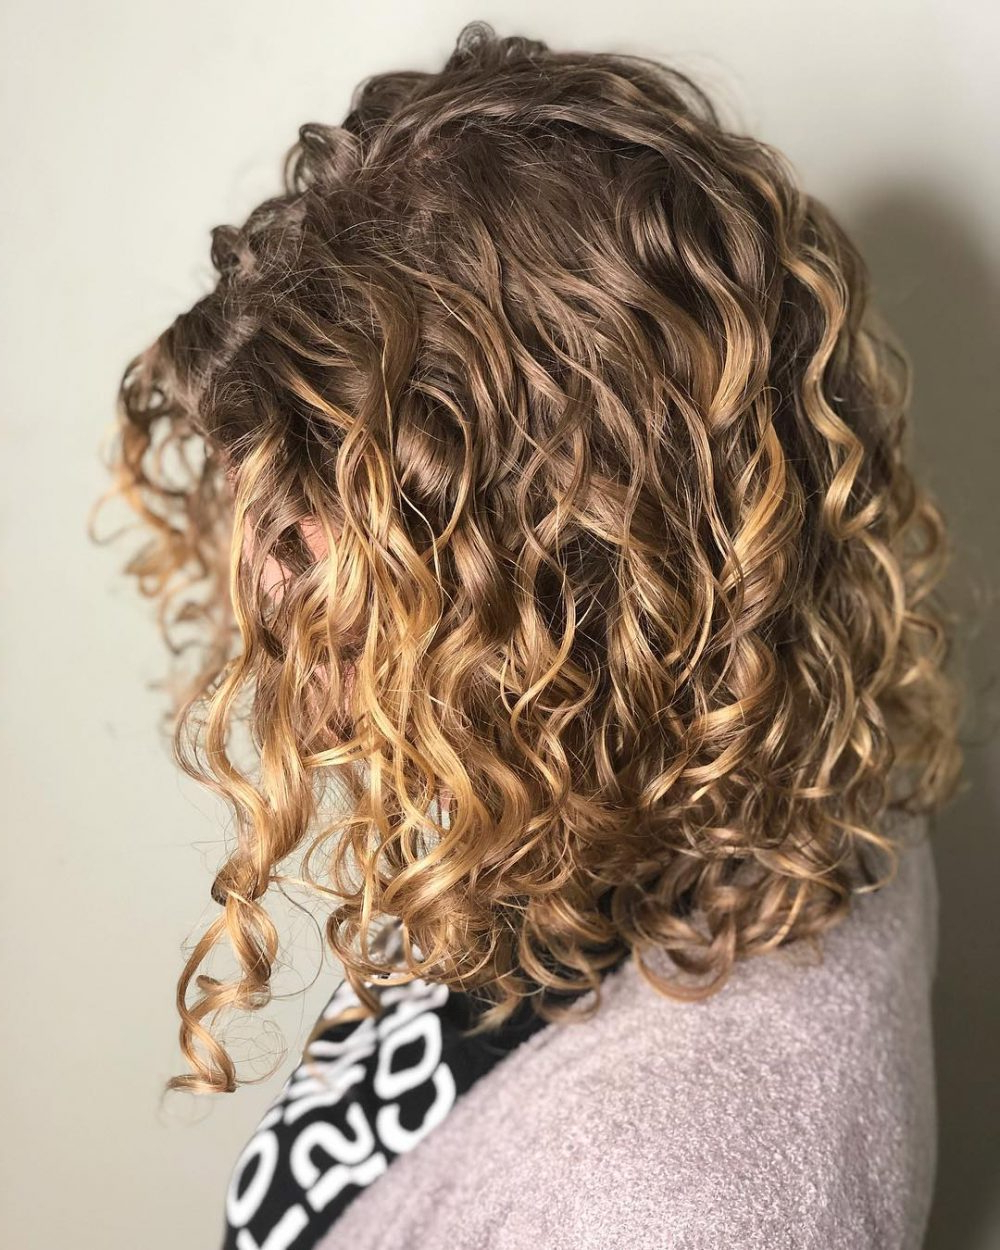 30 Gorgeous Medium Length Curly Hairstyles For Women In 2018 Within Scrunched Curly Brunette Bob Hairstyles (View 4 of 20)